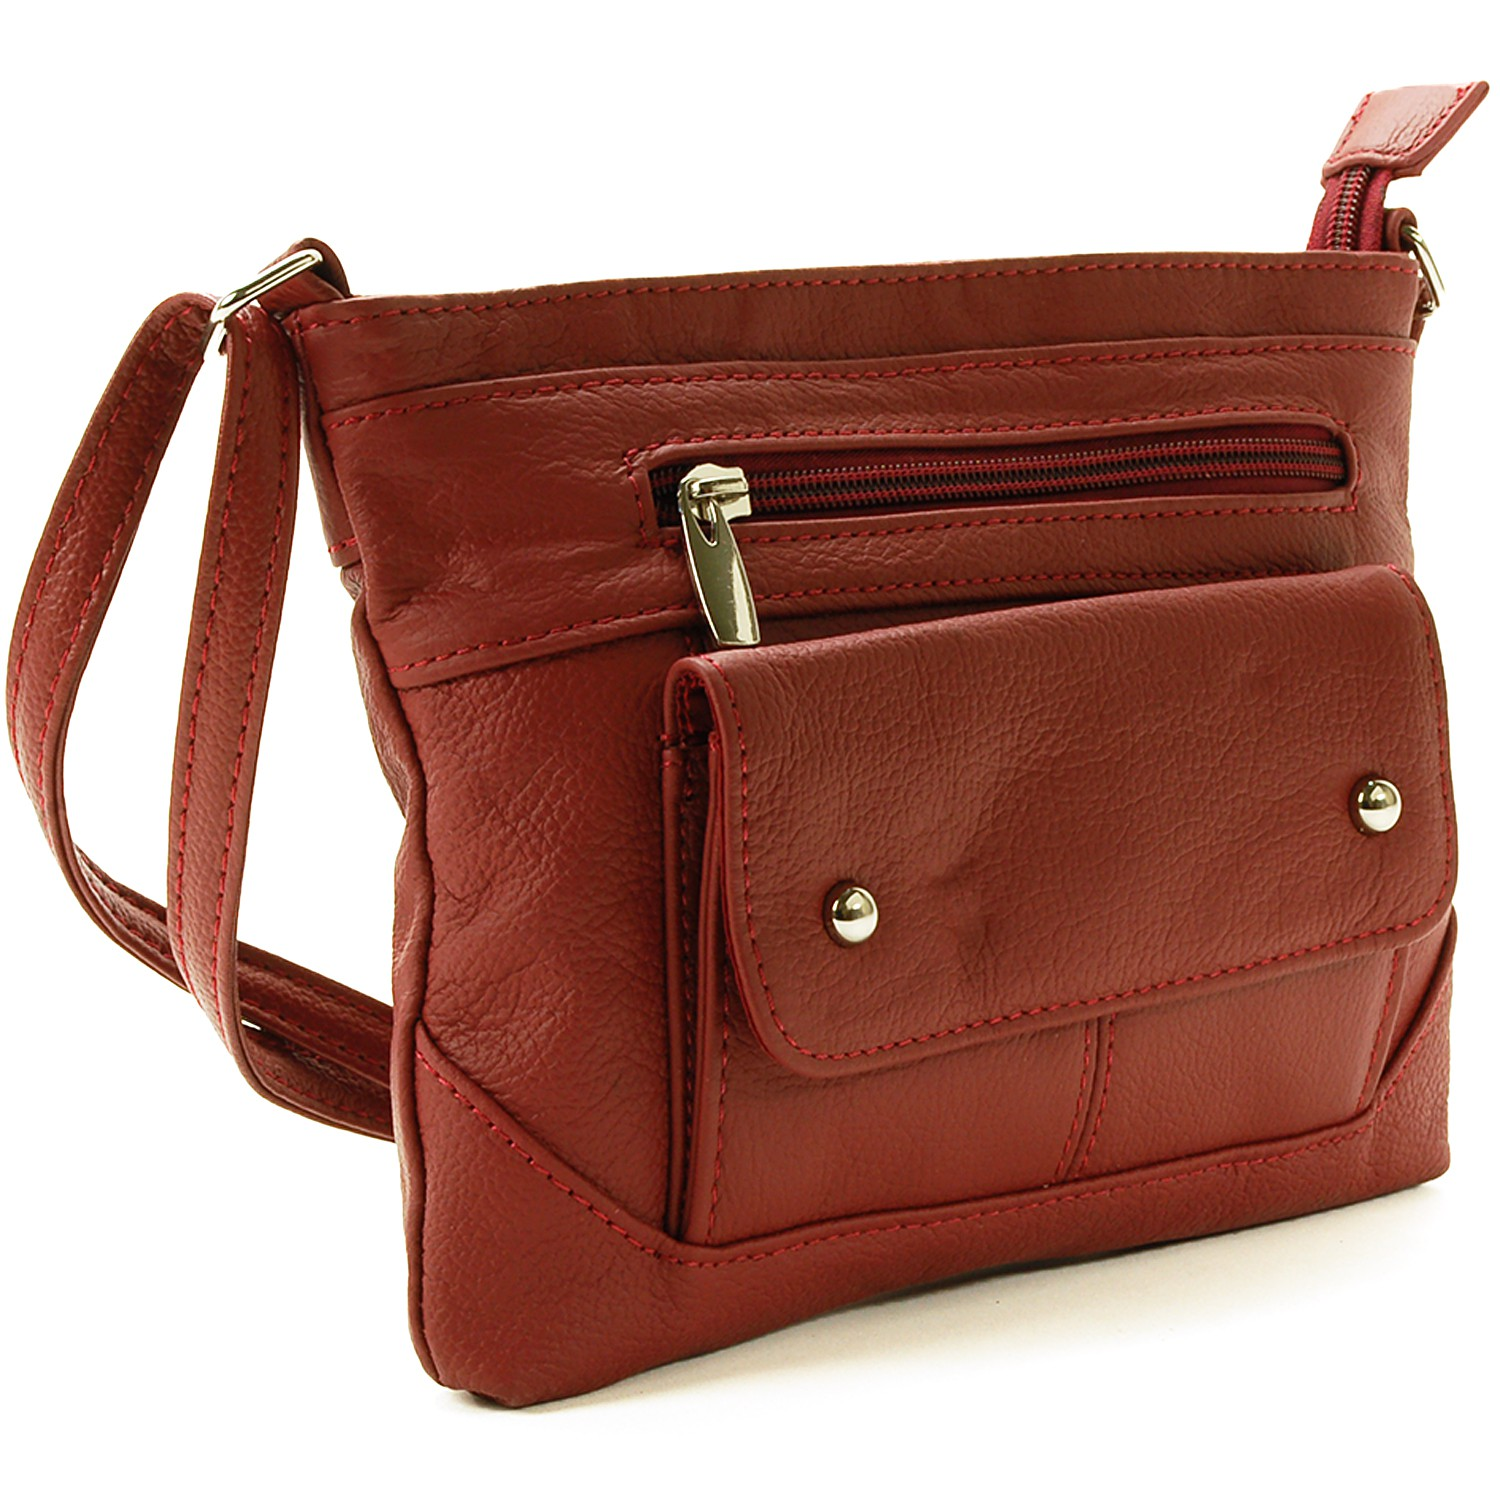 The shoulder bags are made from a variety of high-quality materials, including leather, velvet, and suede, so they'll look good now and in years to come. These shoulder bags are also practical, with a range of organizational features including zip and pouch pockets for your smartphone, loose change, and other small items.